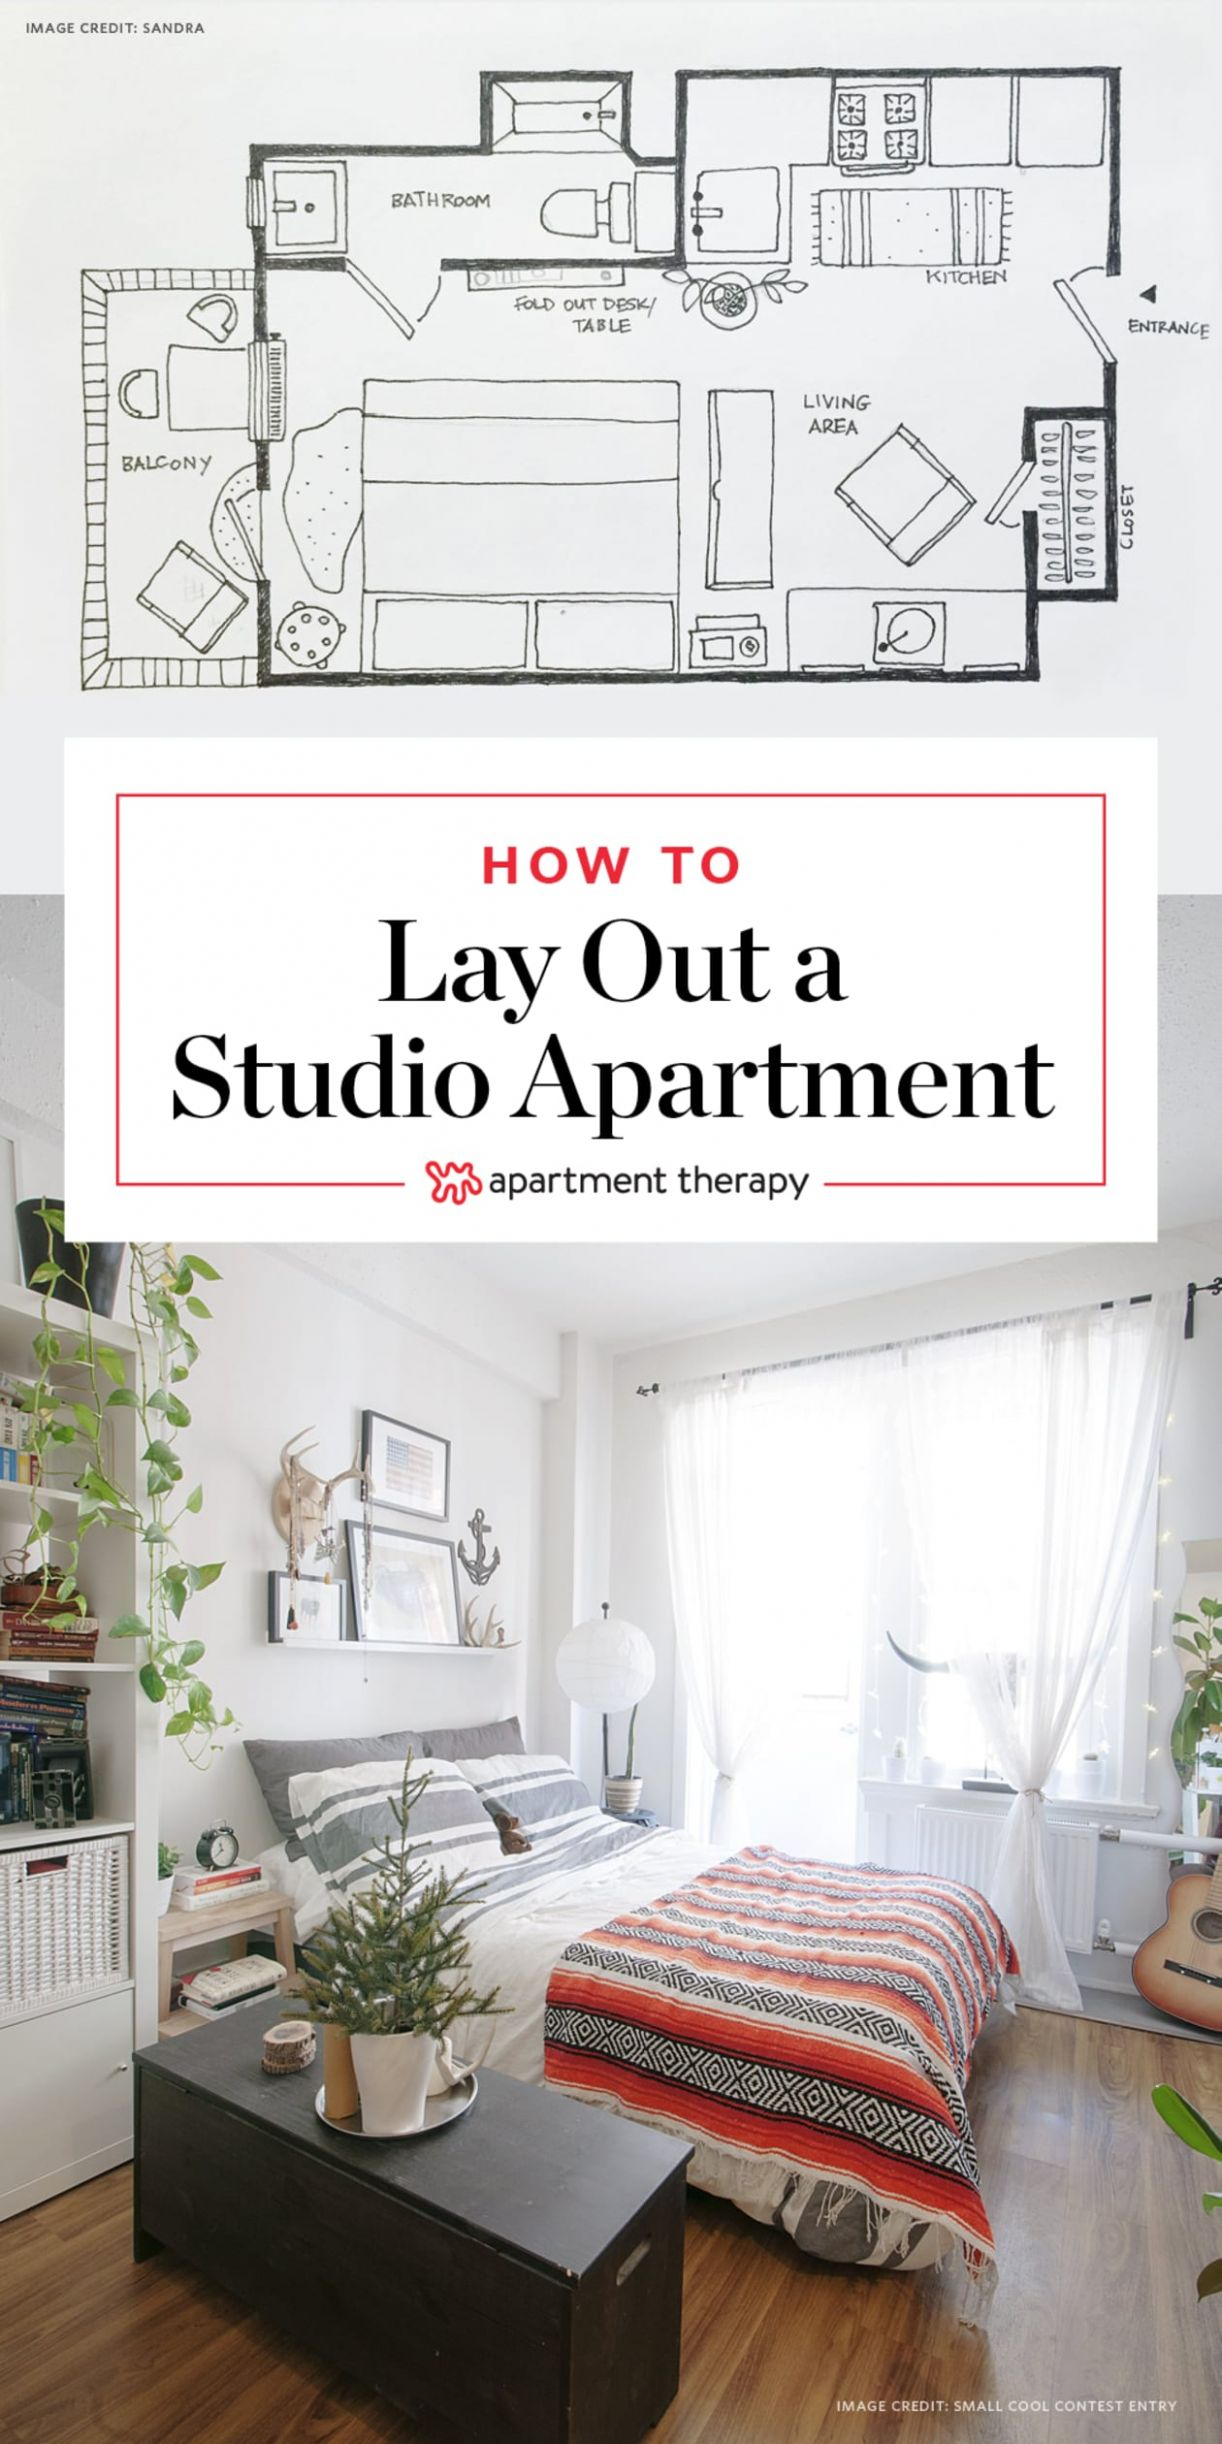 11 Ways to Lay Out a Studio Apartment | Apartment Therapy - apartment design layout ideas